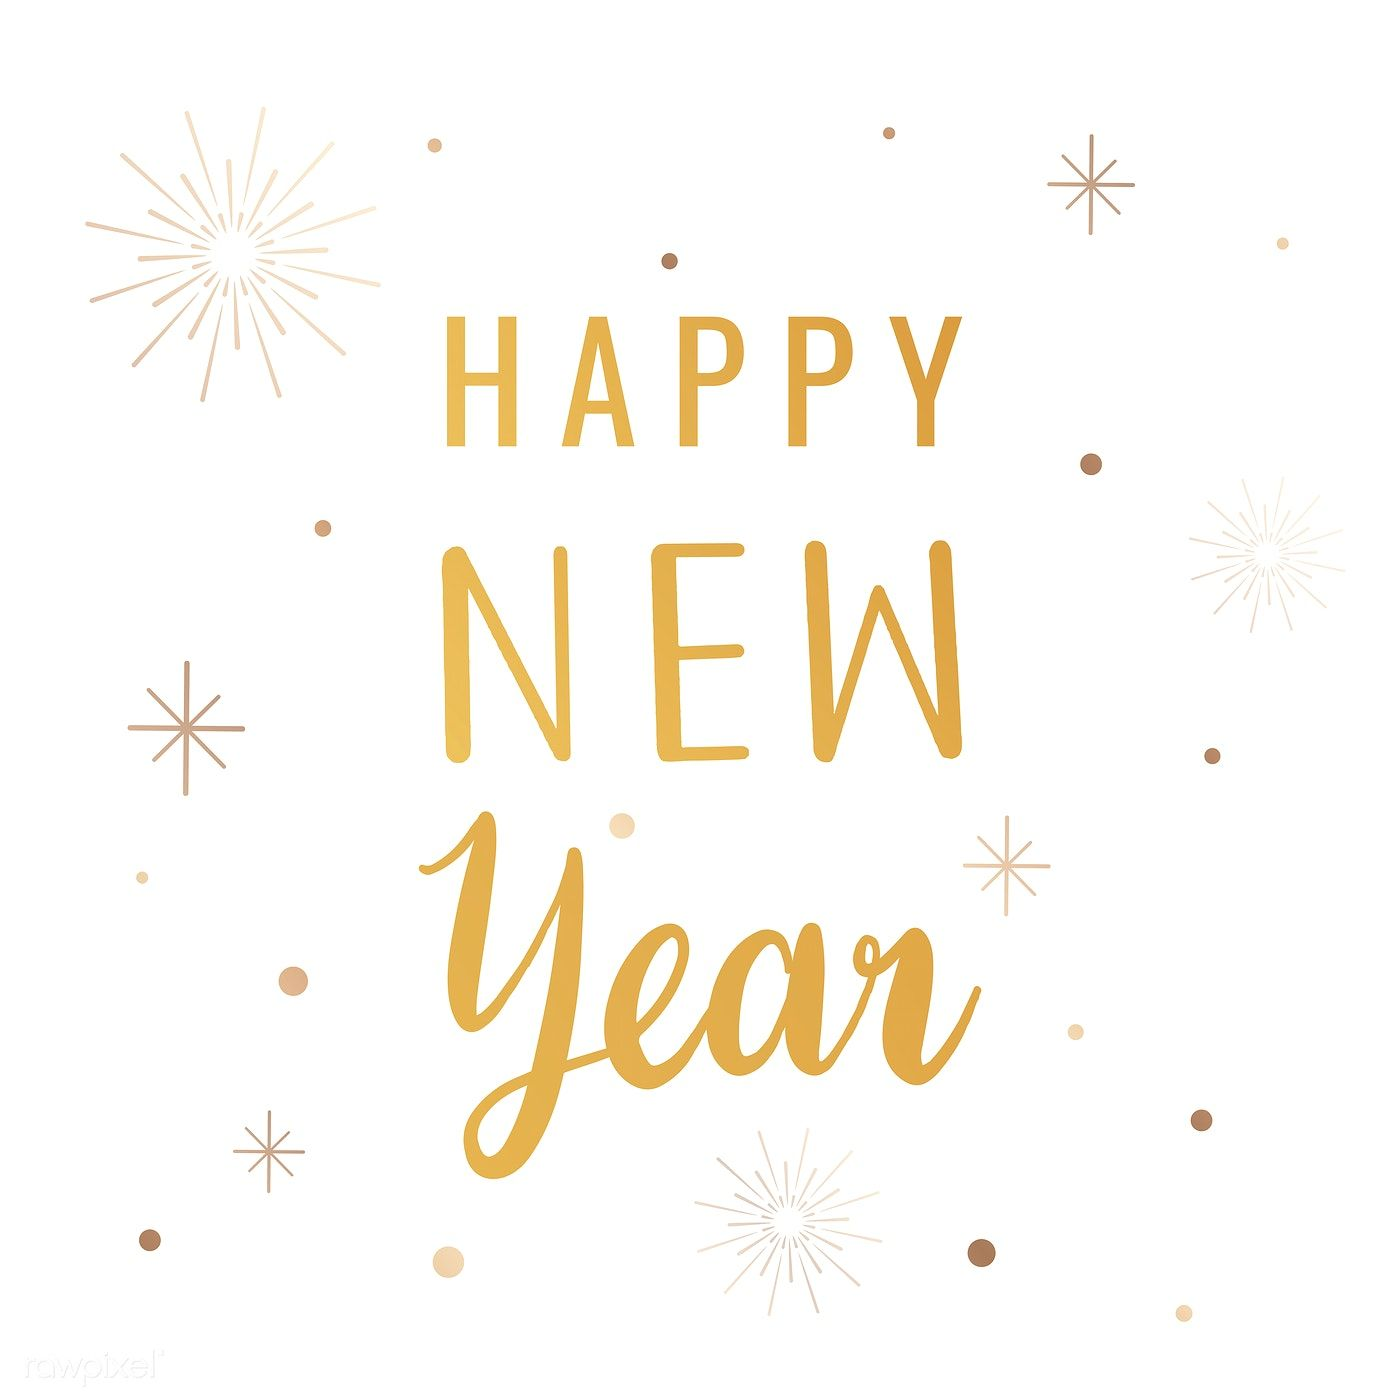 Happy New Year Card Vector Free Image By Rawpixel Com Aum Happy New Year Cards Happy New Year Typography Happy New Year Calligraphy